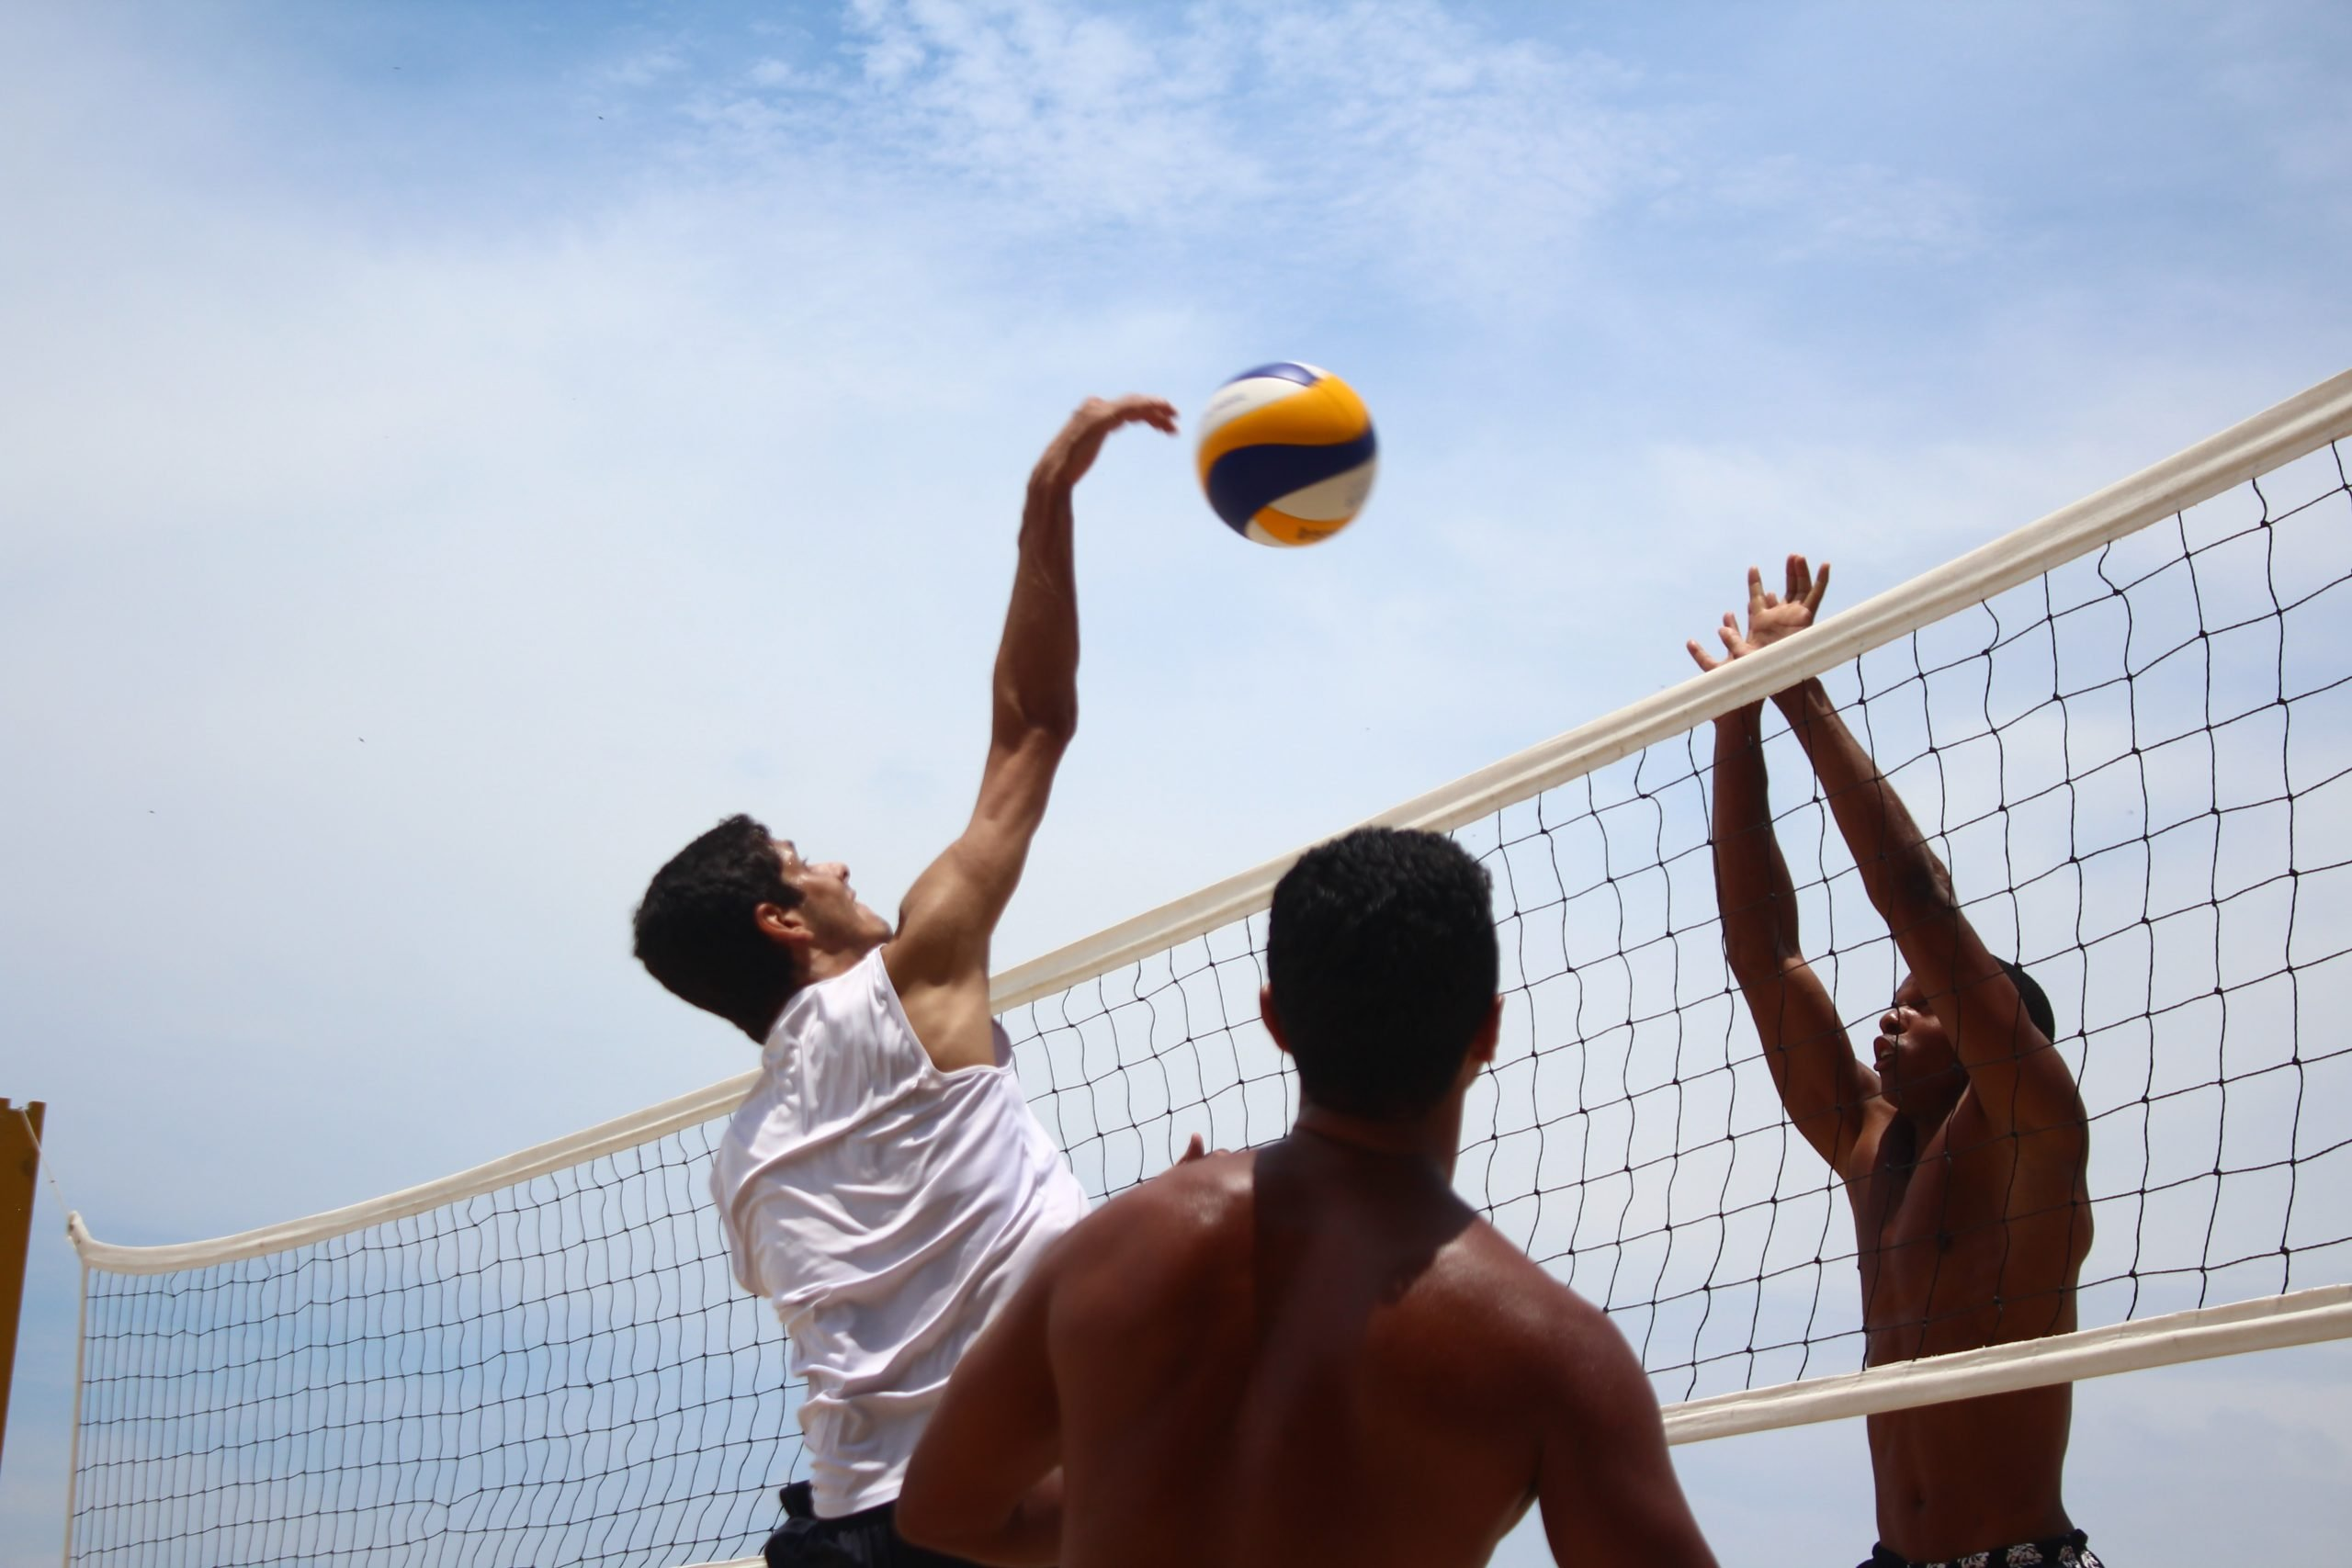 man in white shorts playing volleyball during daytime